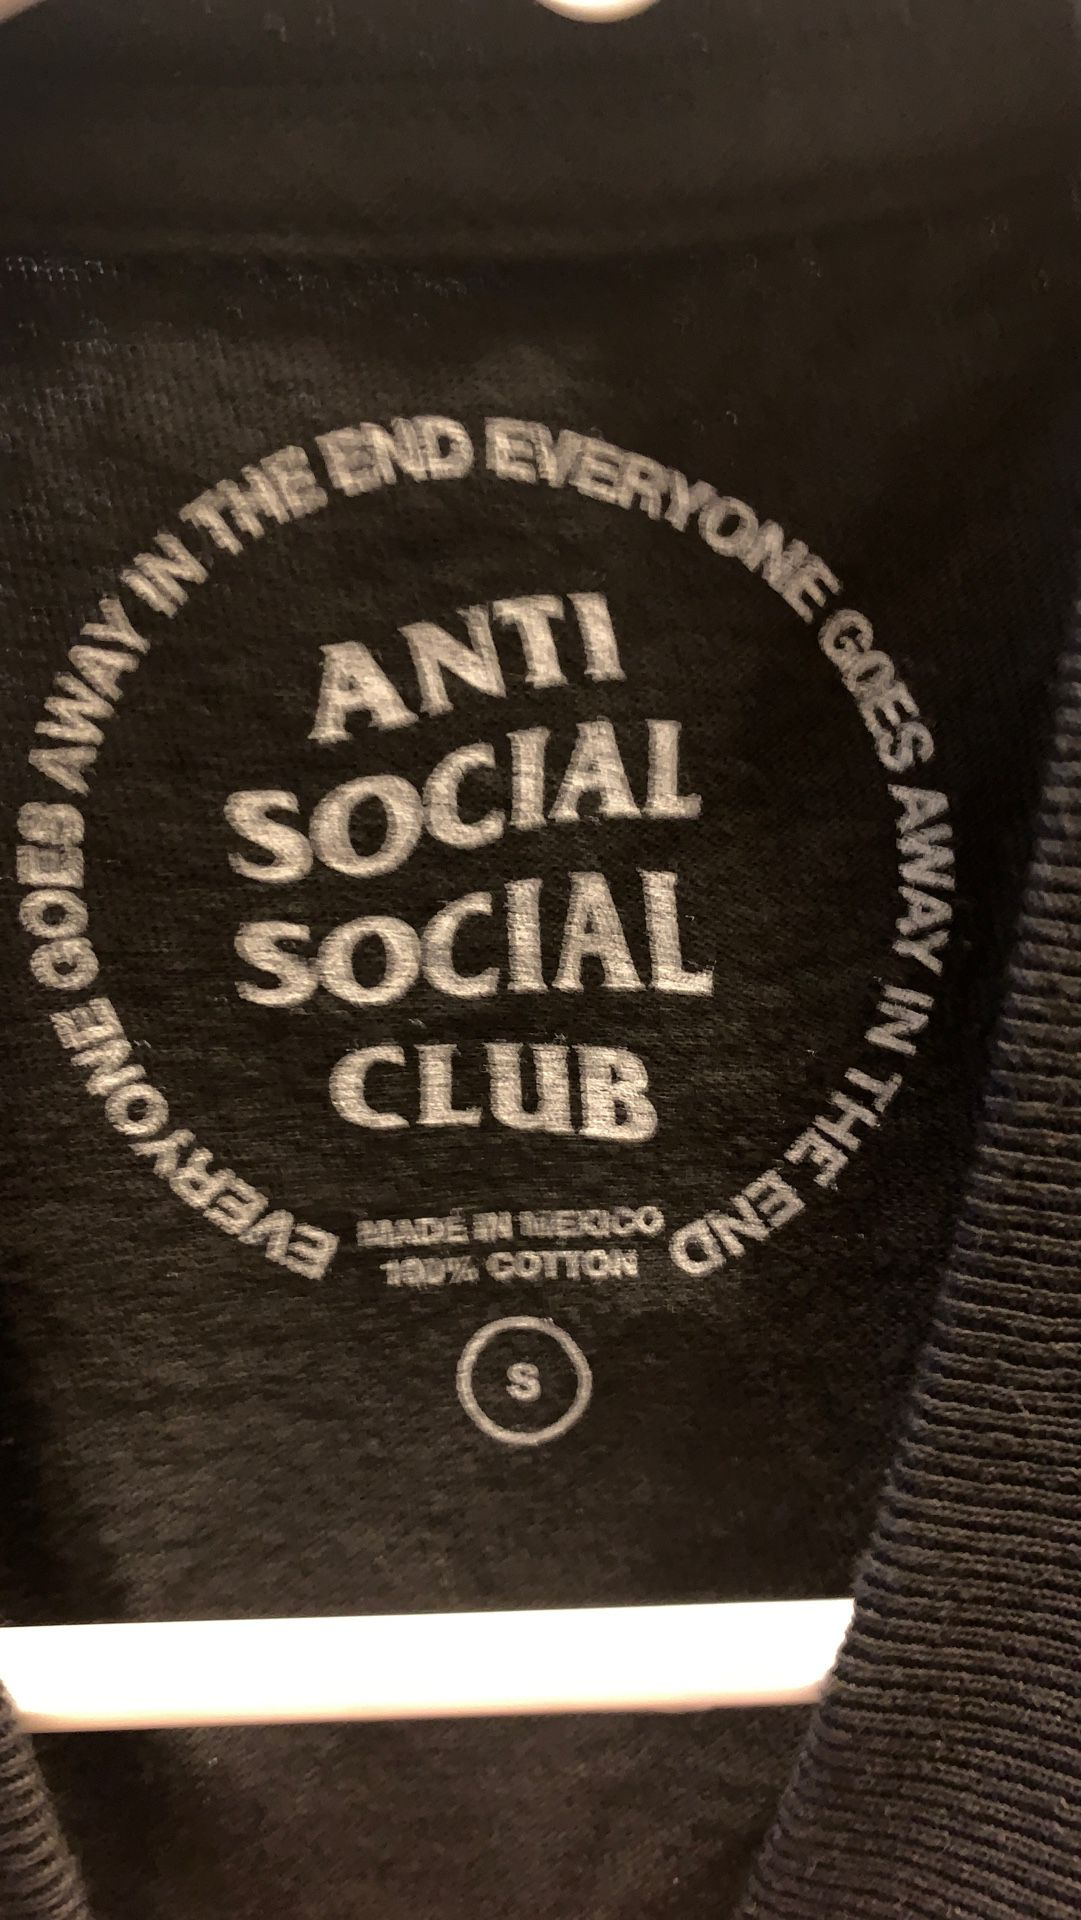 Authentic anti social shirt small